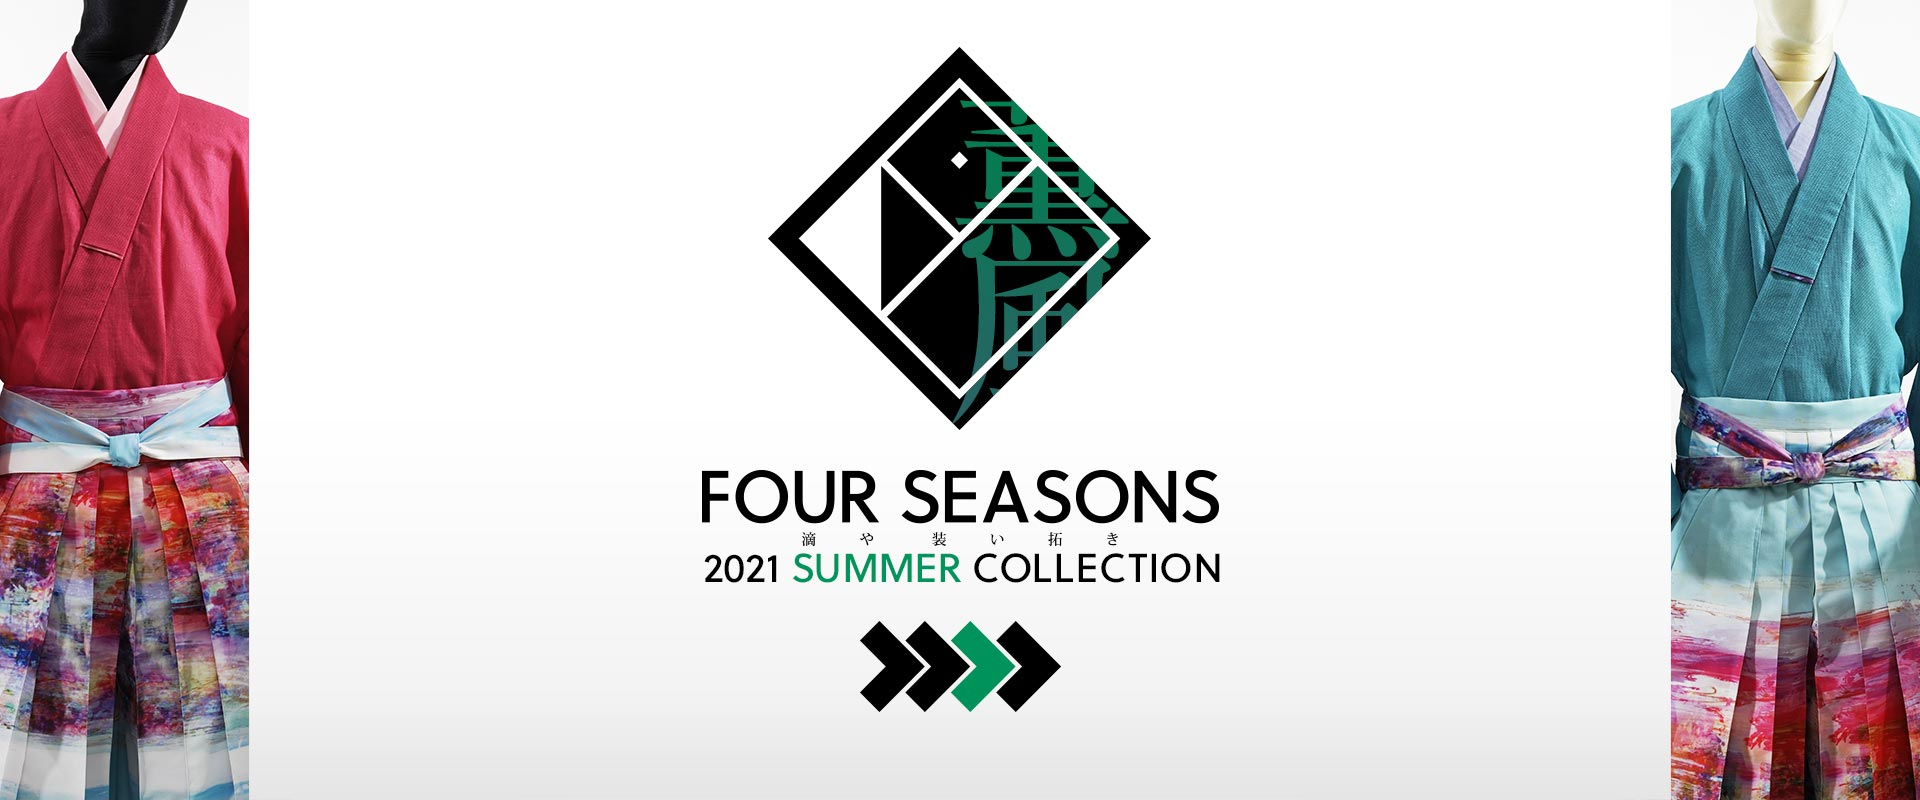 [PHOTO:FOUR SEASONS 2021 SUMMER COLLECTION]